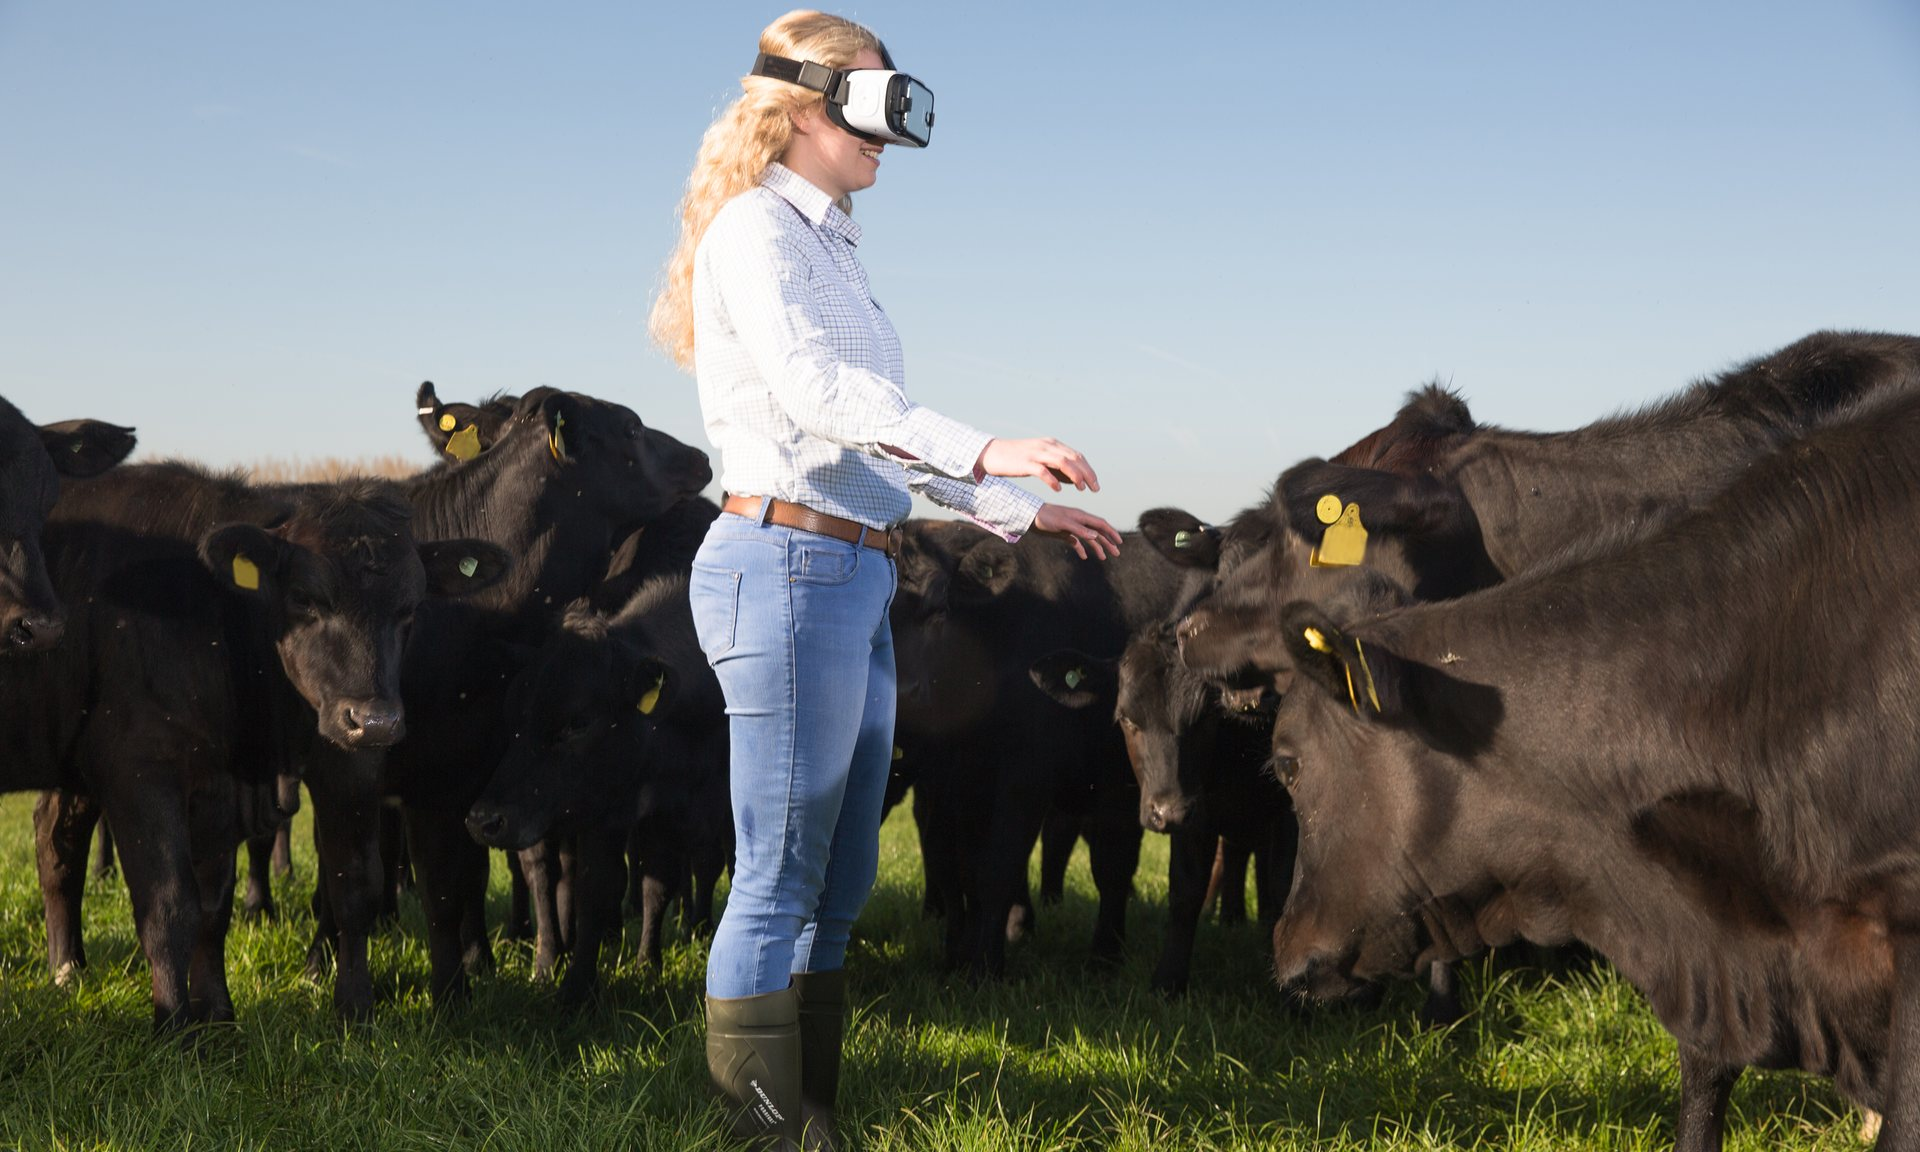 Fast food chain plans roadshow of agricultural shows around UK to connect consumers with modern farming realities